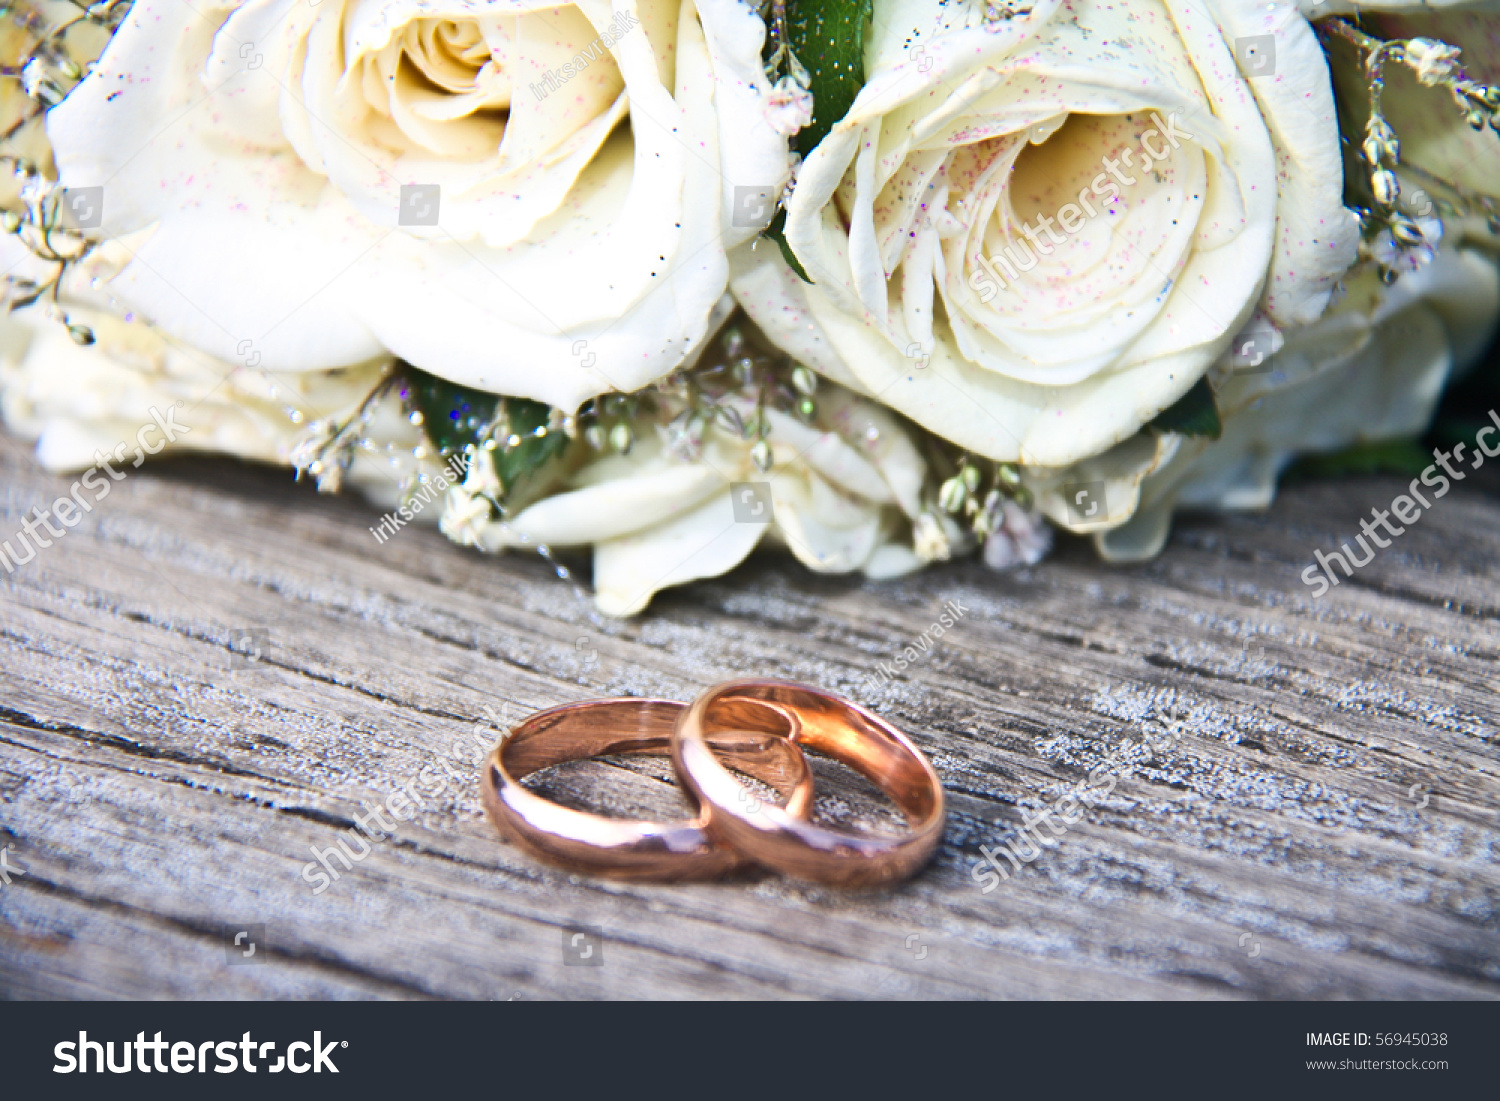 wedding beautiful roses special desktop bouquet wallpaper day iphone flowers love plus flower rings petals garden